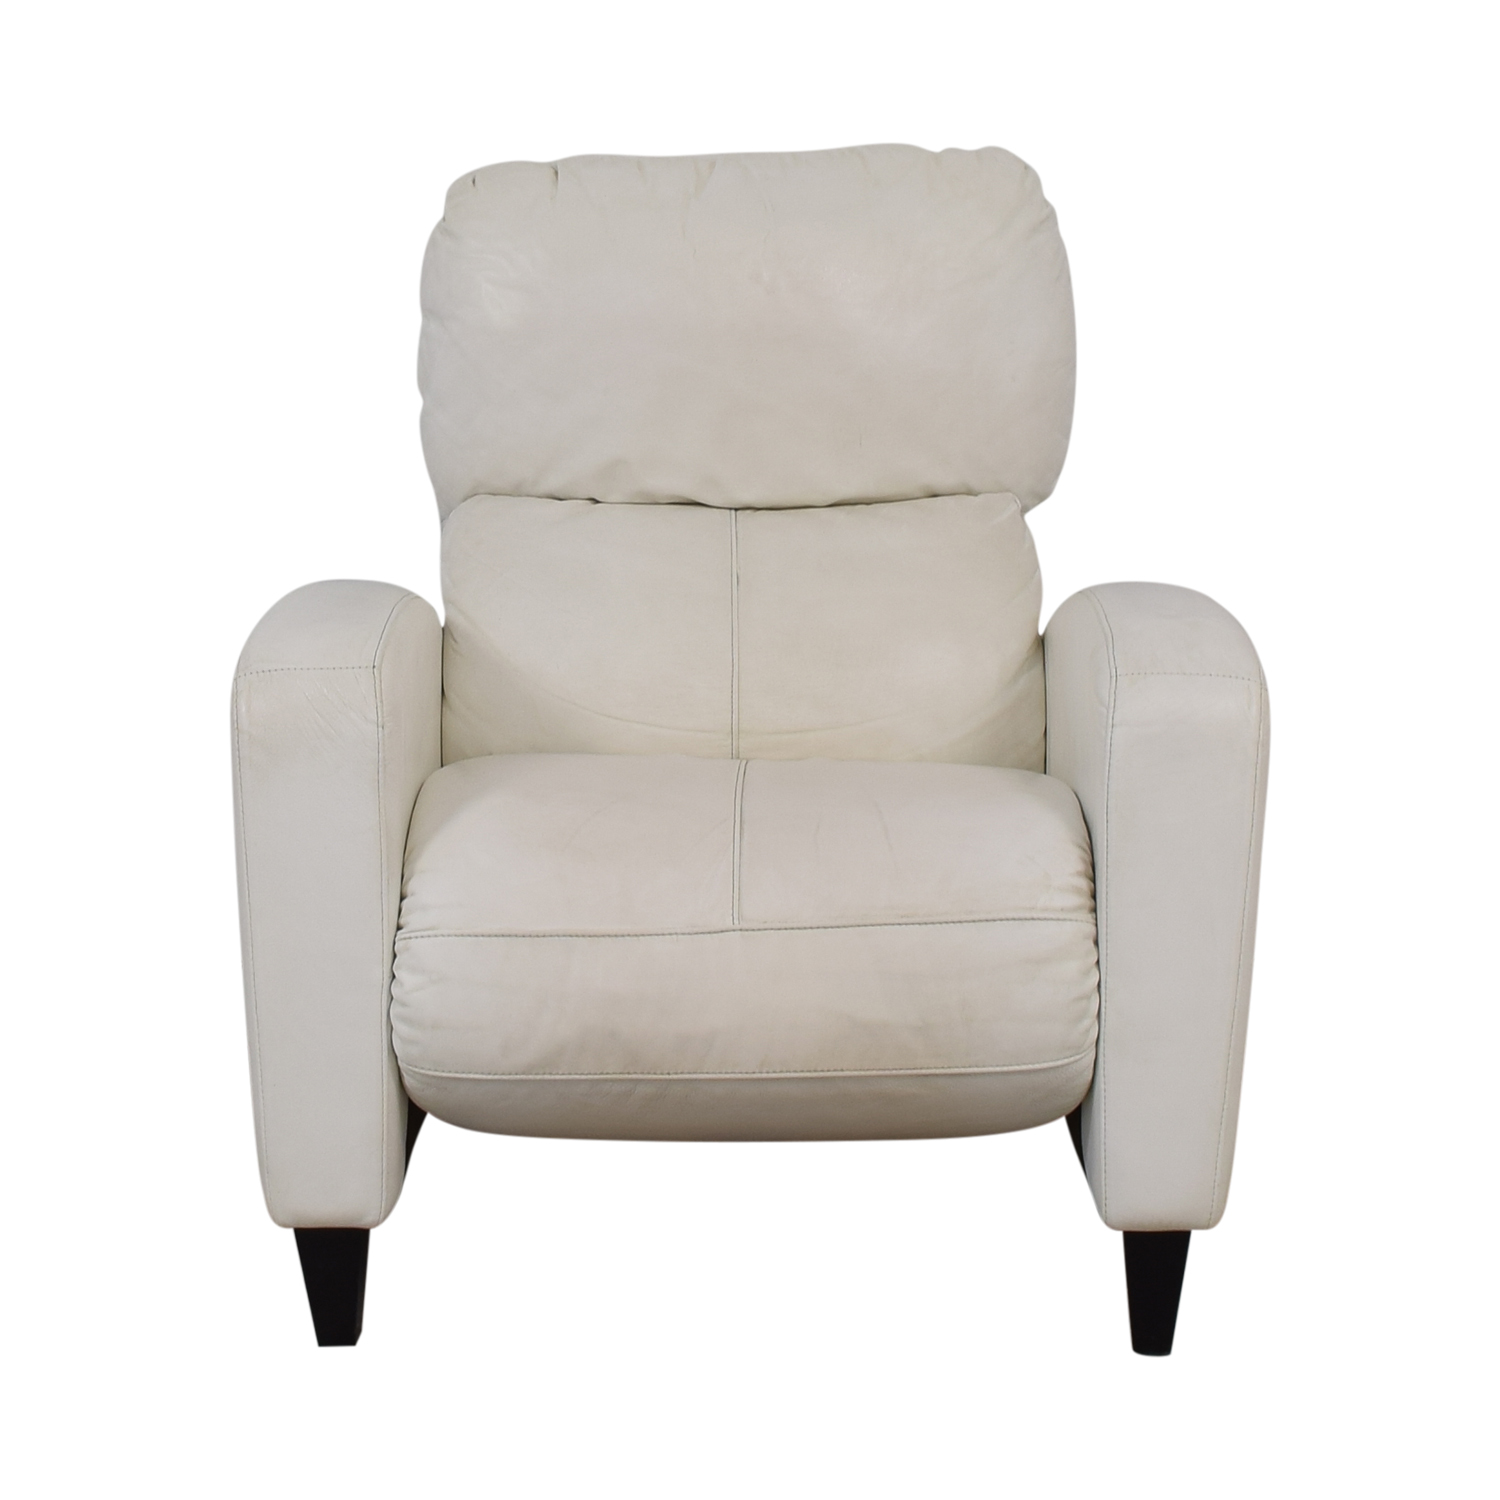 American Leather American Leather White Leather Recliner used